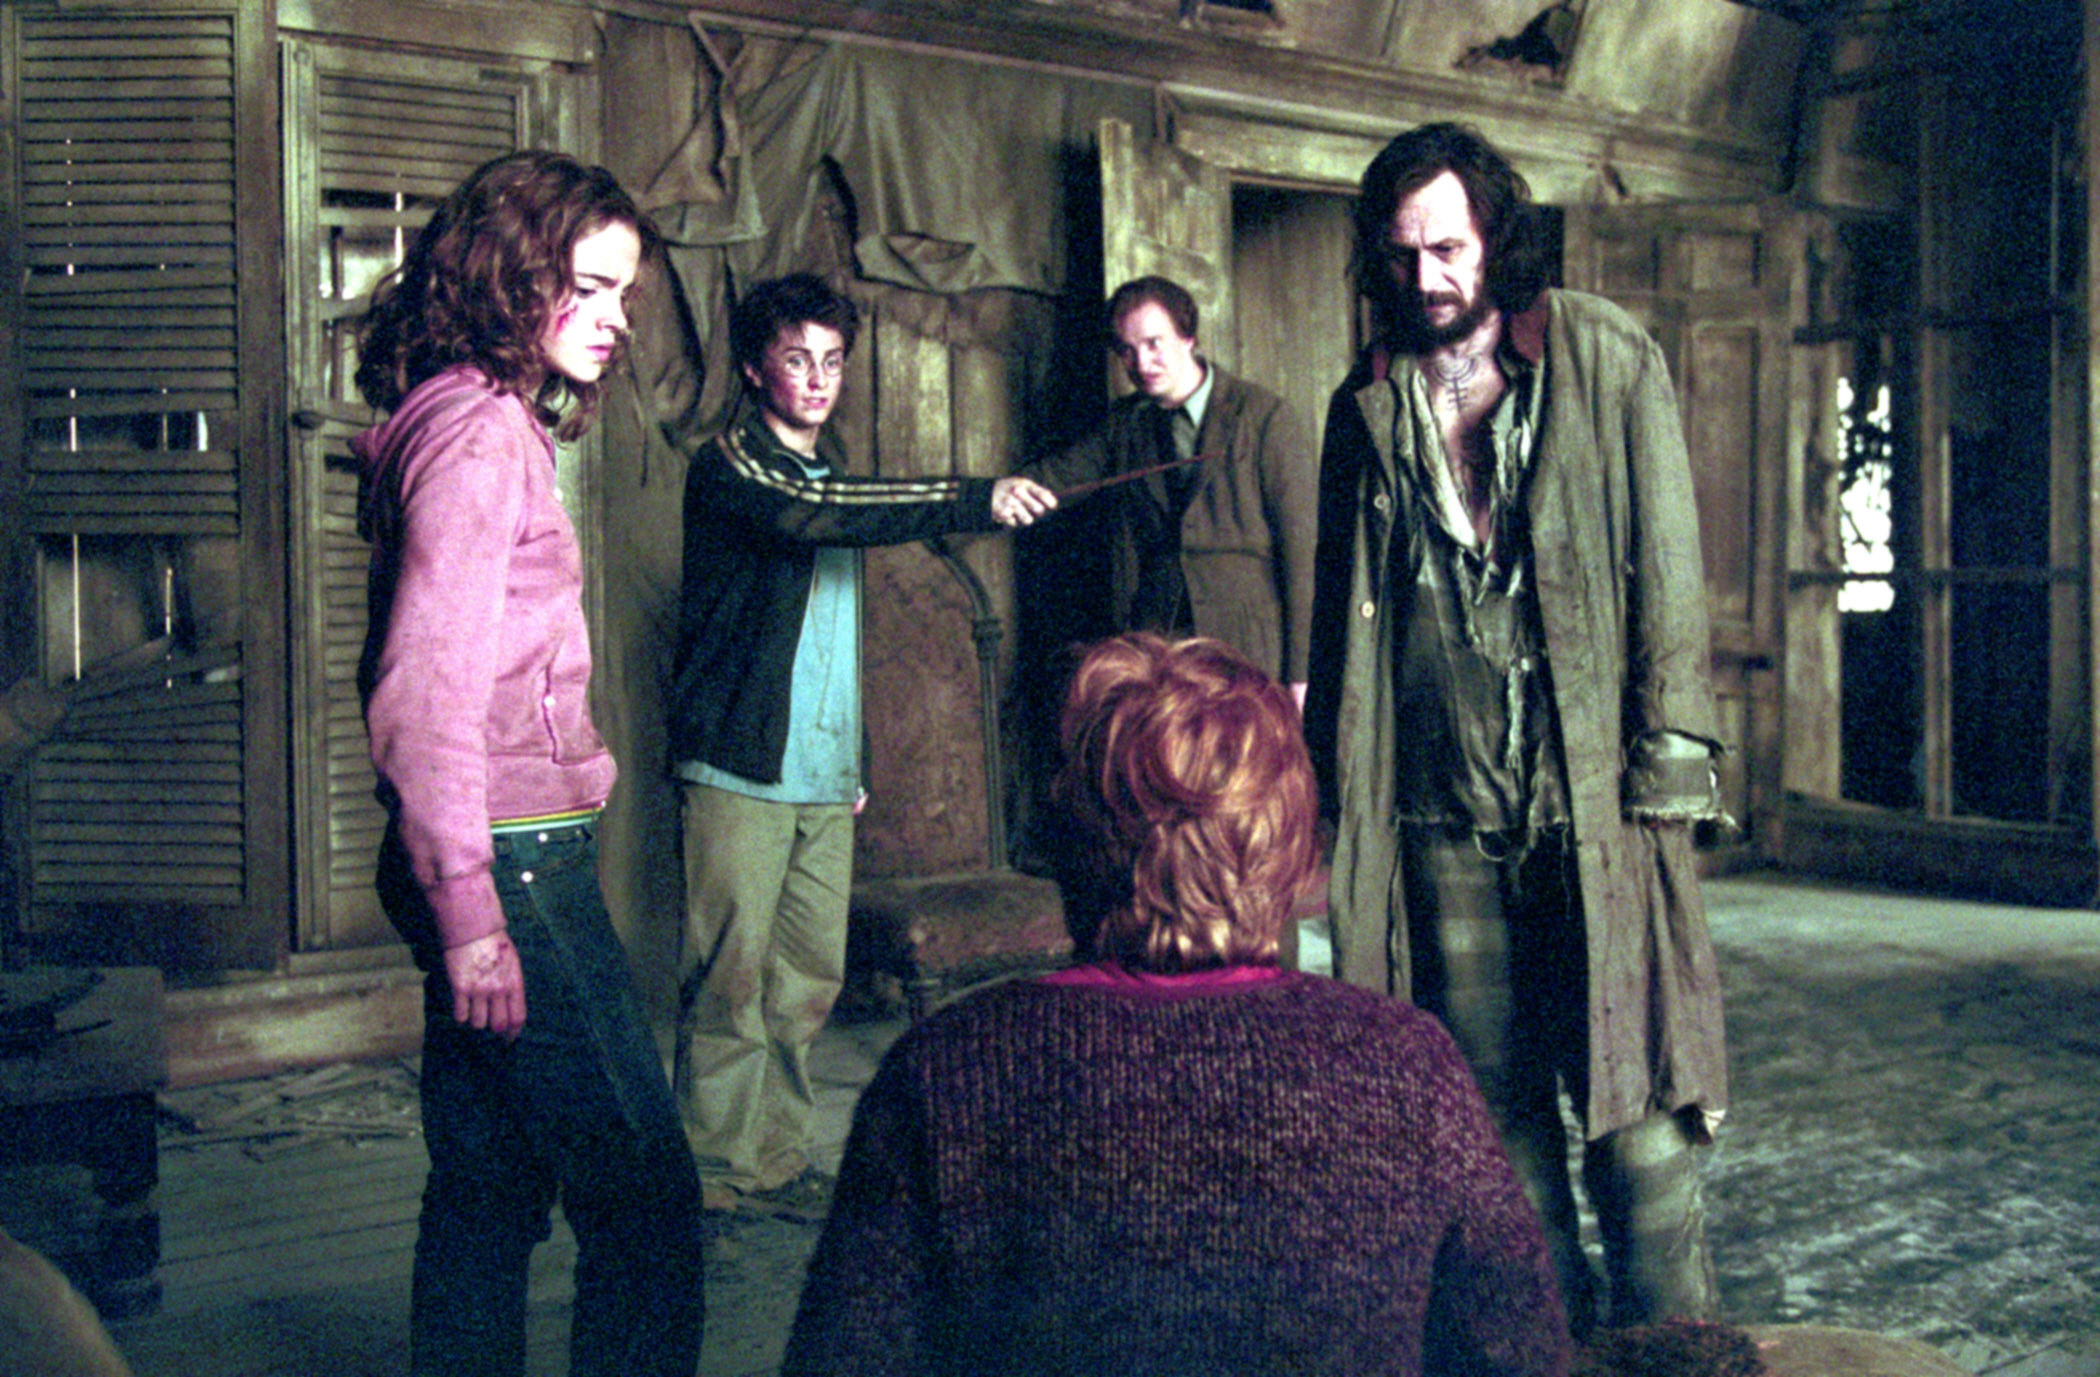 Harry, Hermione, Remus, Sirius, and Ron stand in the Shrieking Shack